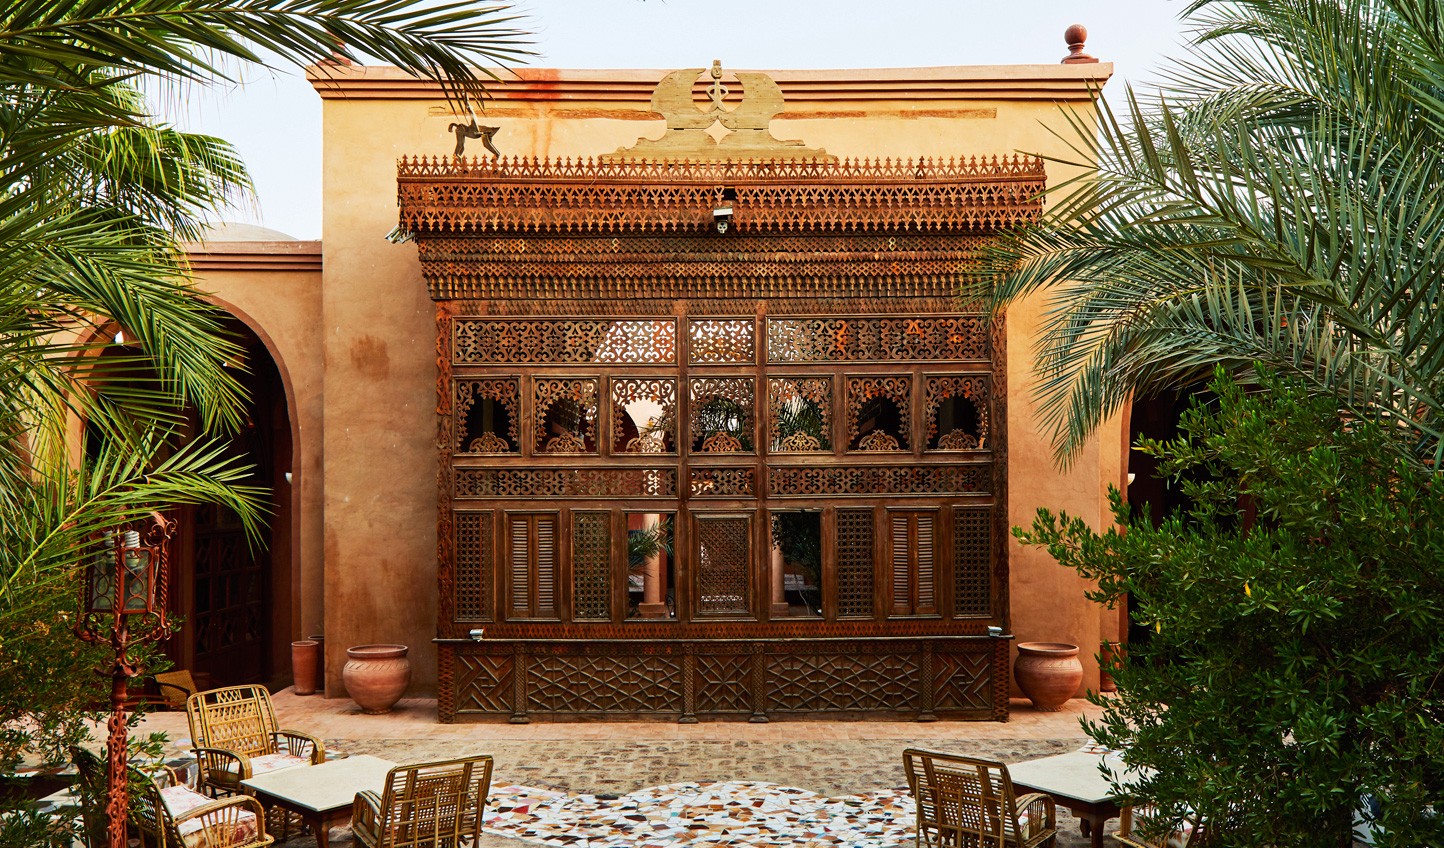 Discover a tranquil oasis at Al Moudira